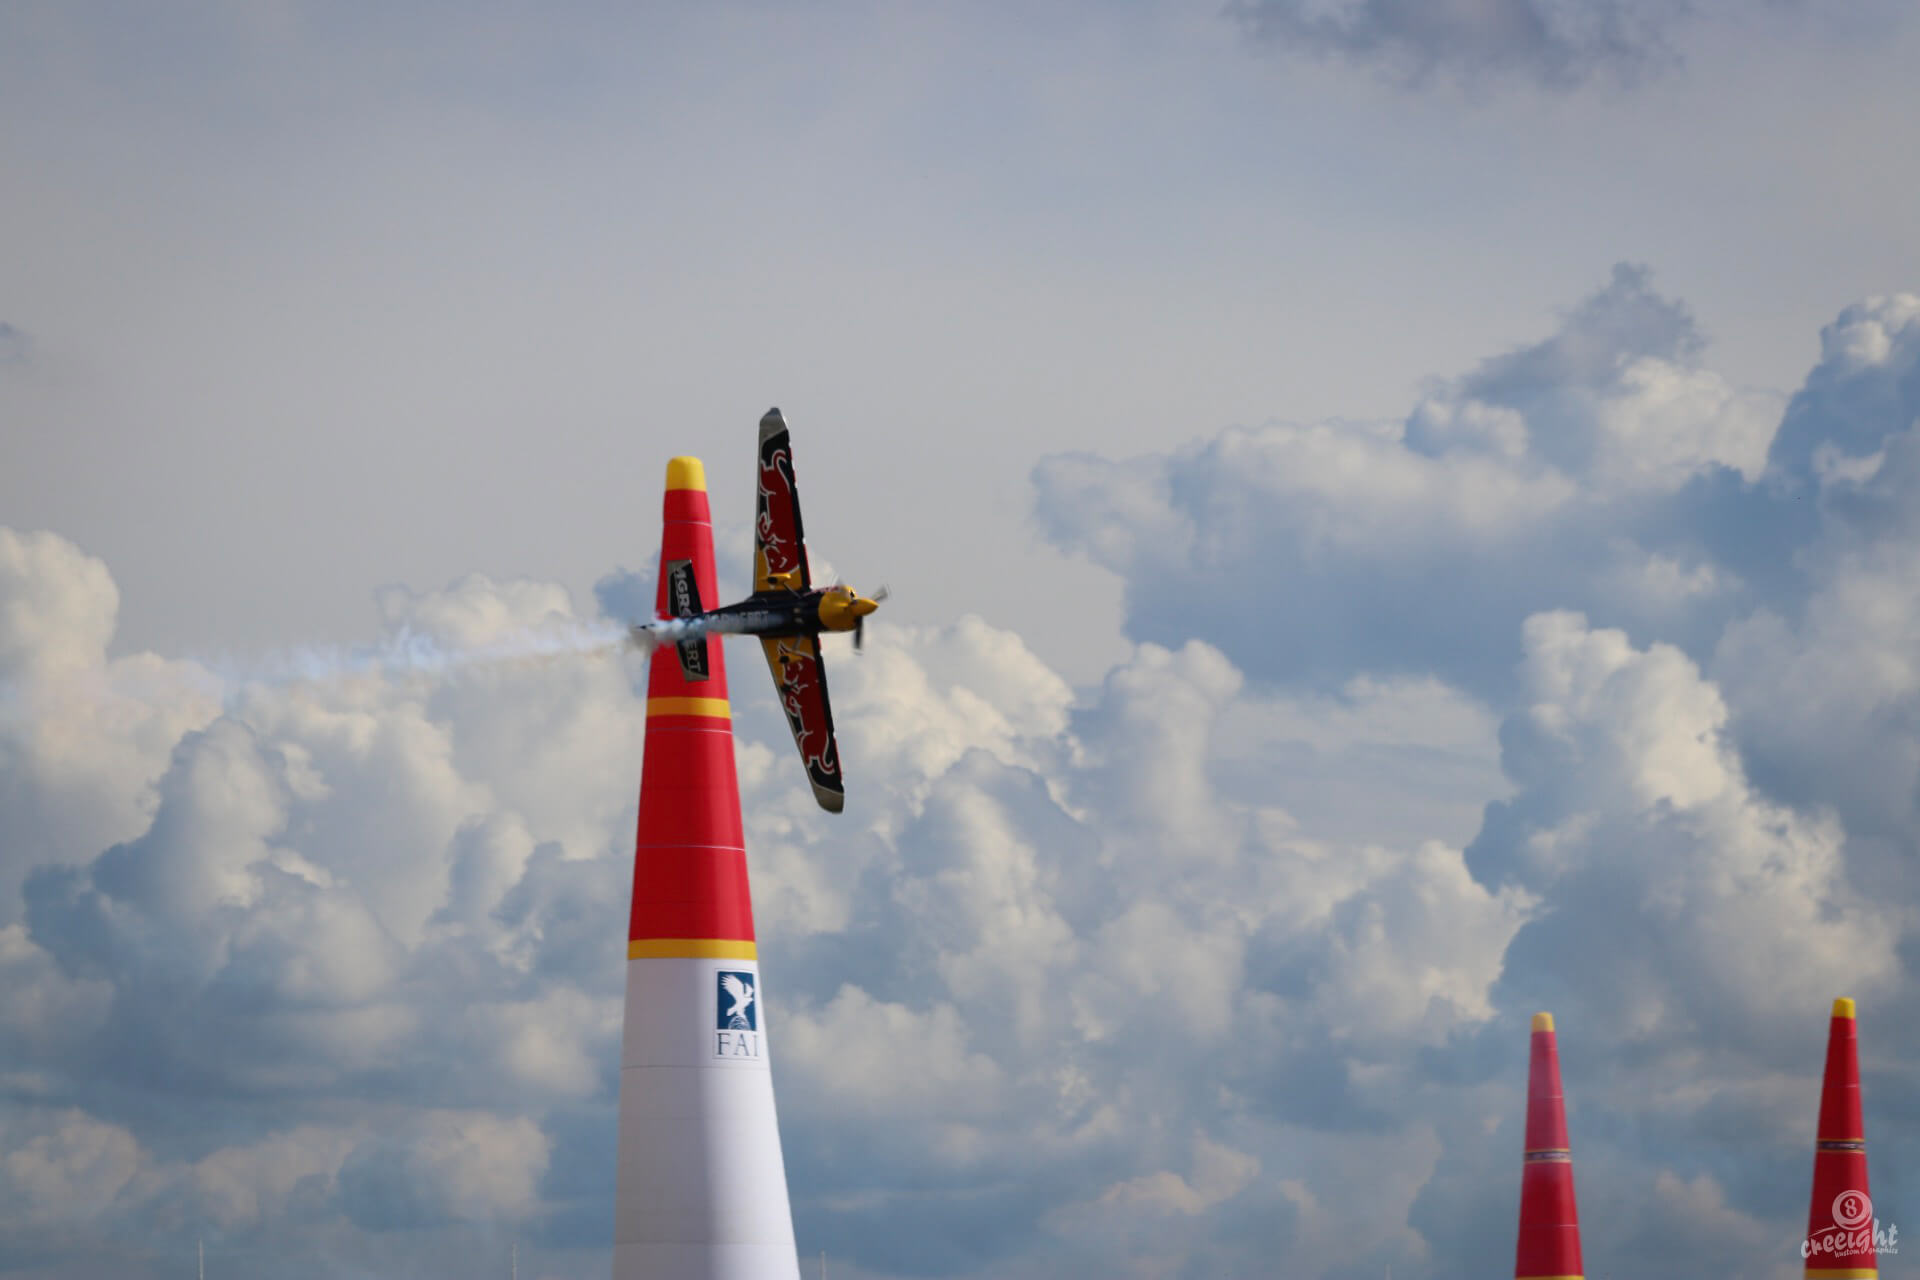 Martin Sonka, Red Bull Air Race 2017, Lausitzring